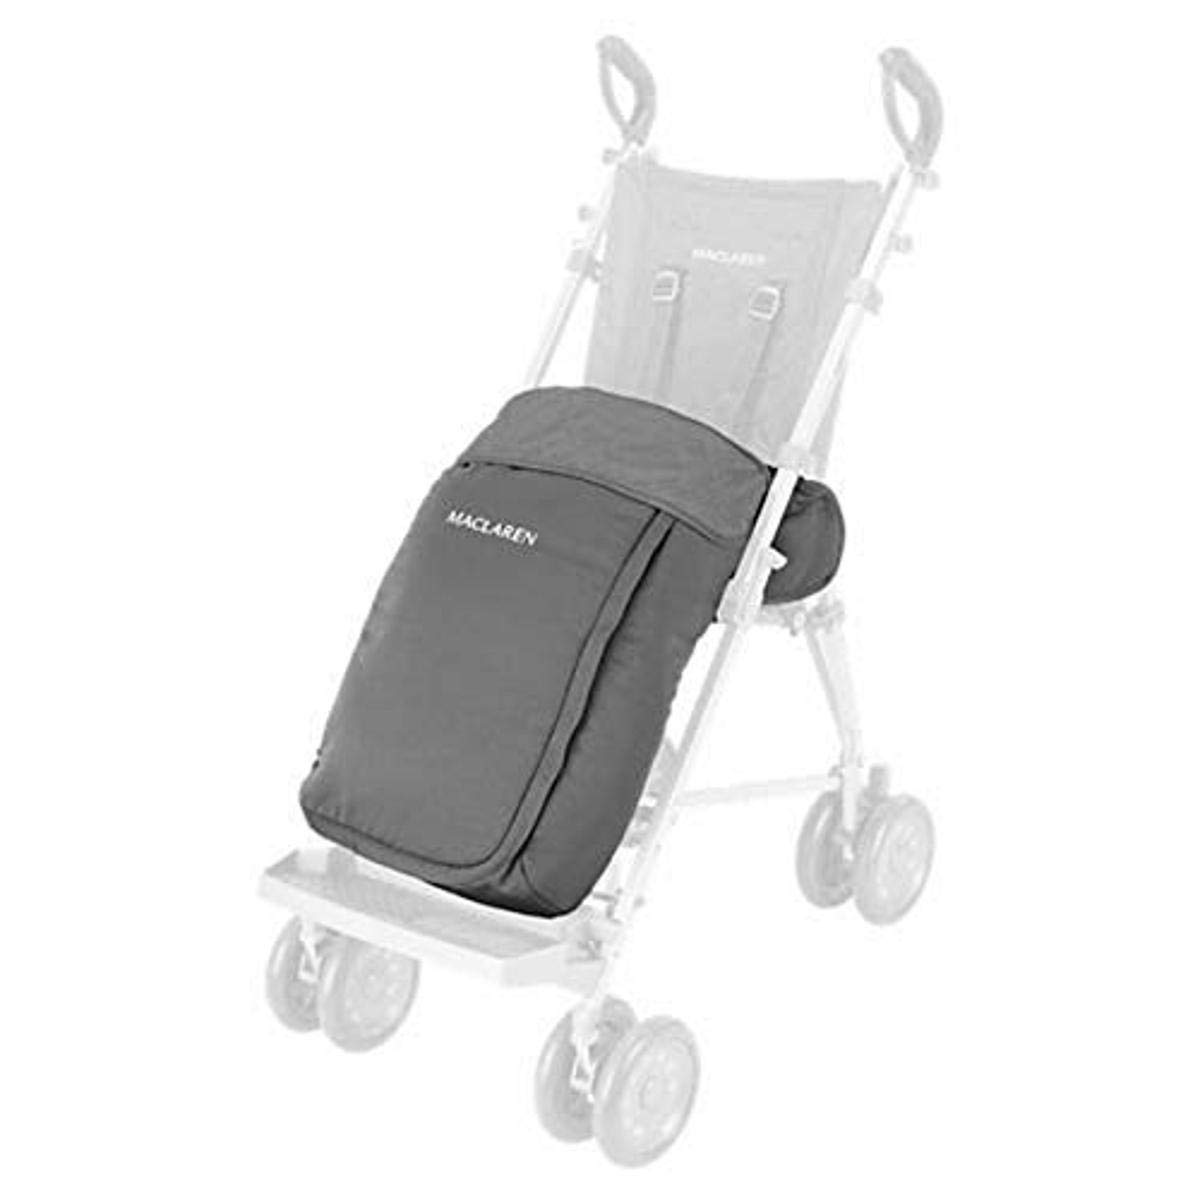 Maclaren Major Boot- Designed for Special Needs Transport Chair. Perfect Cold Weather Accessory. Easily fits on Maclaren Major Elite